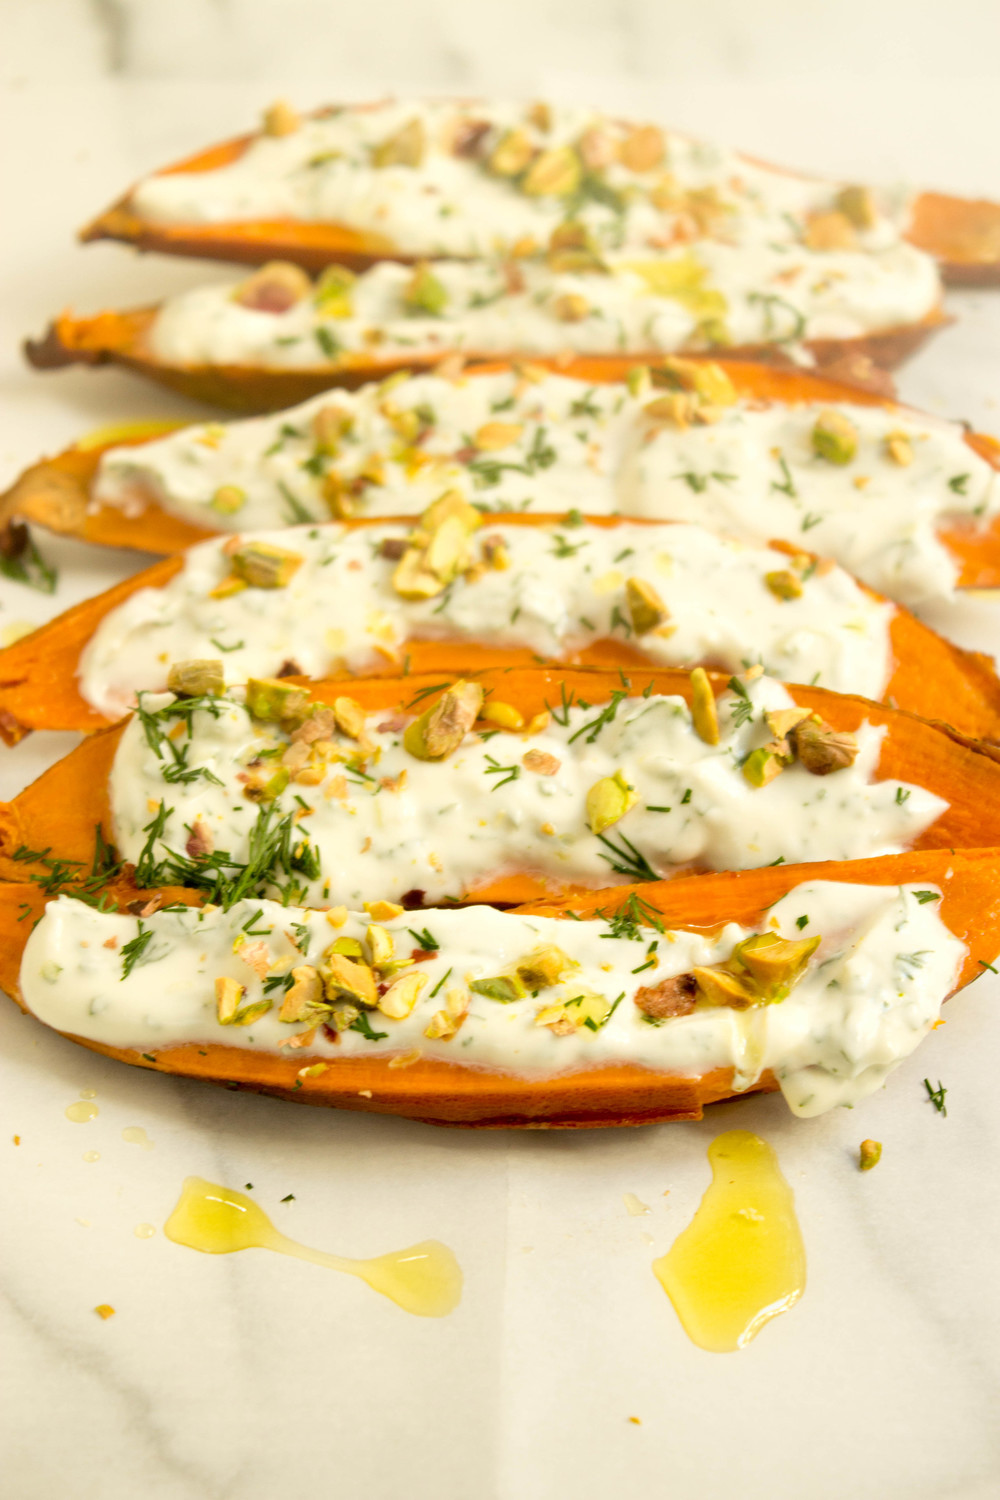 Sweet Potatoes w/ Mascarpone, Dill & Pistachios